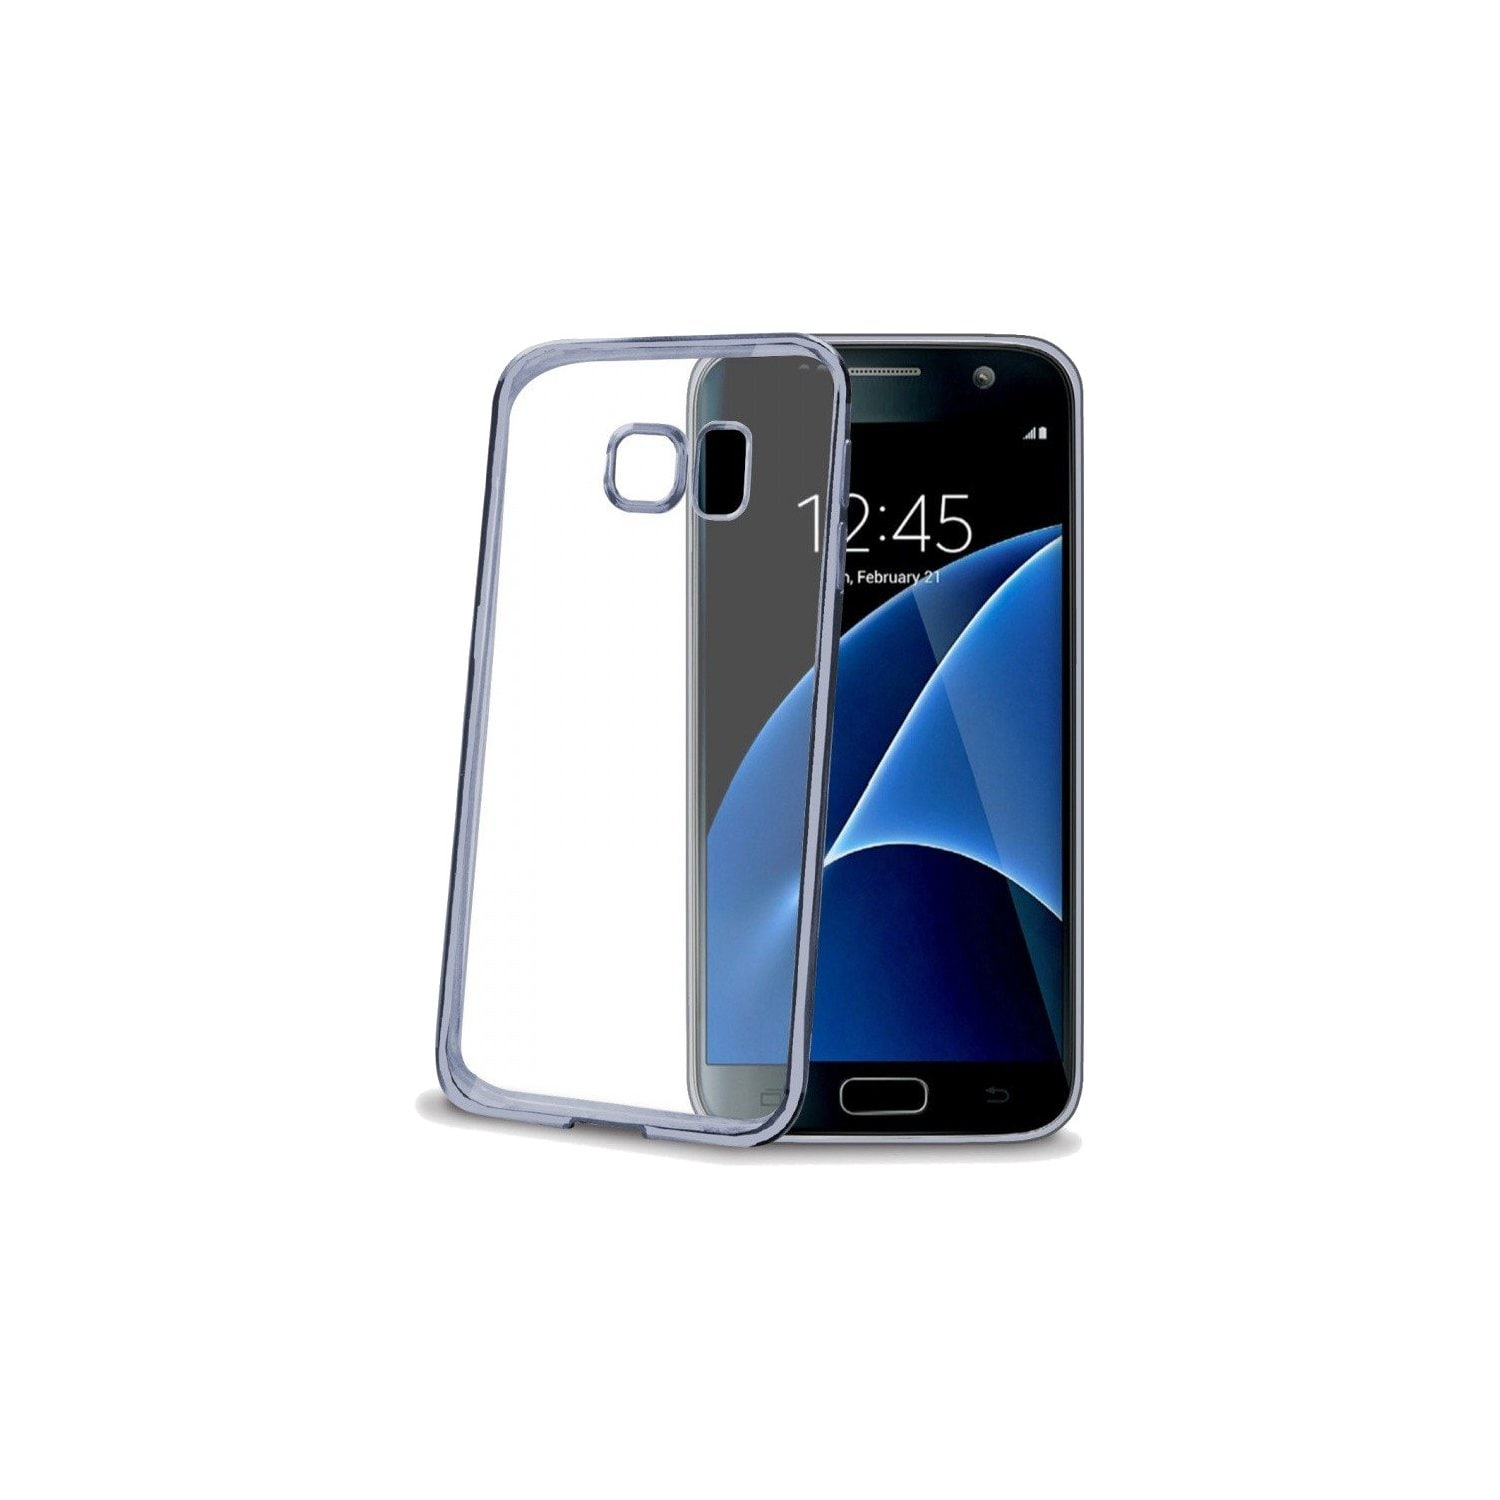 Etui na smartfon CELLY Laser Cover do Samsung Galaxy S7 Srebrno-szary BCLGS7DS